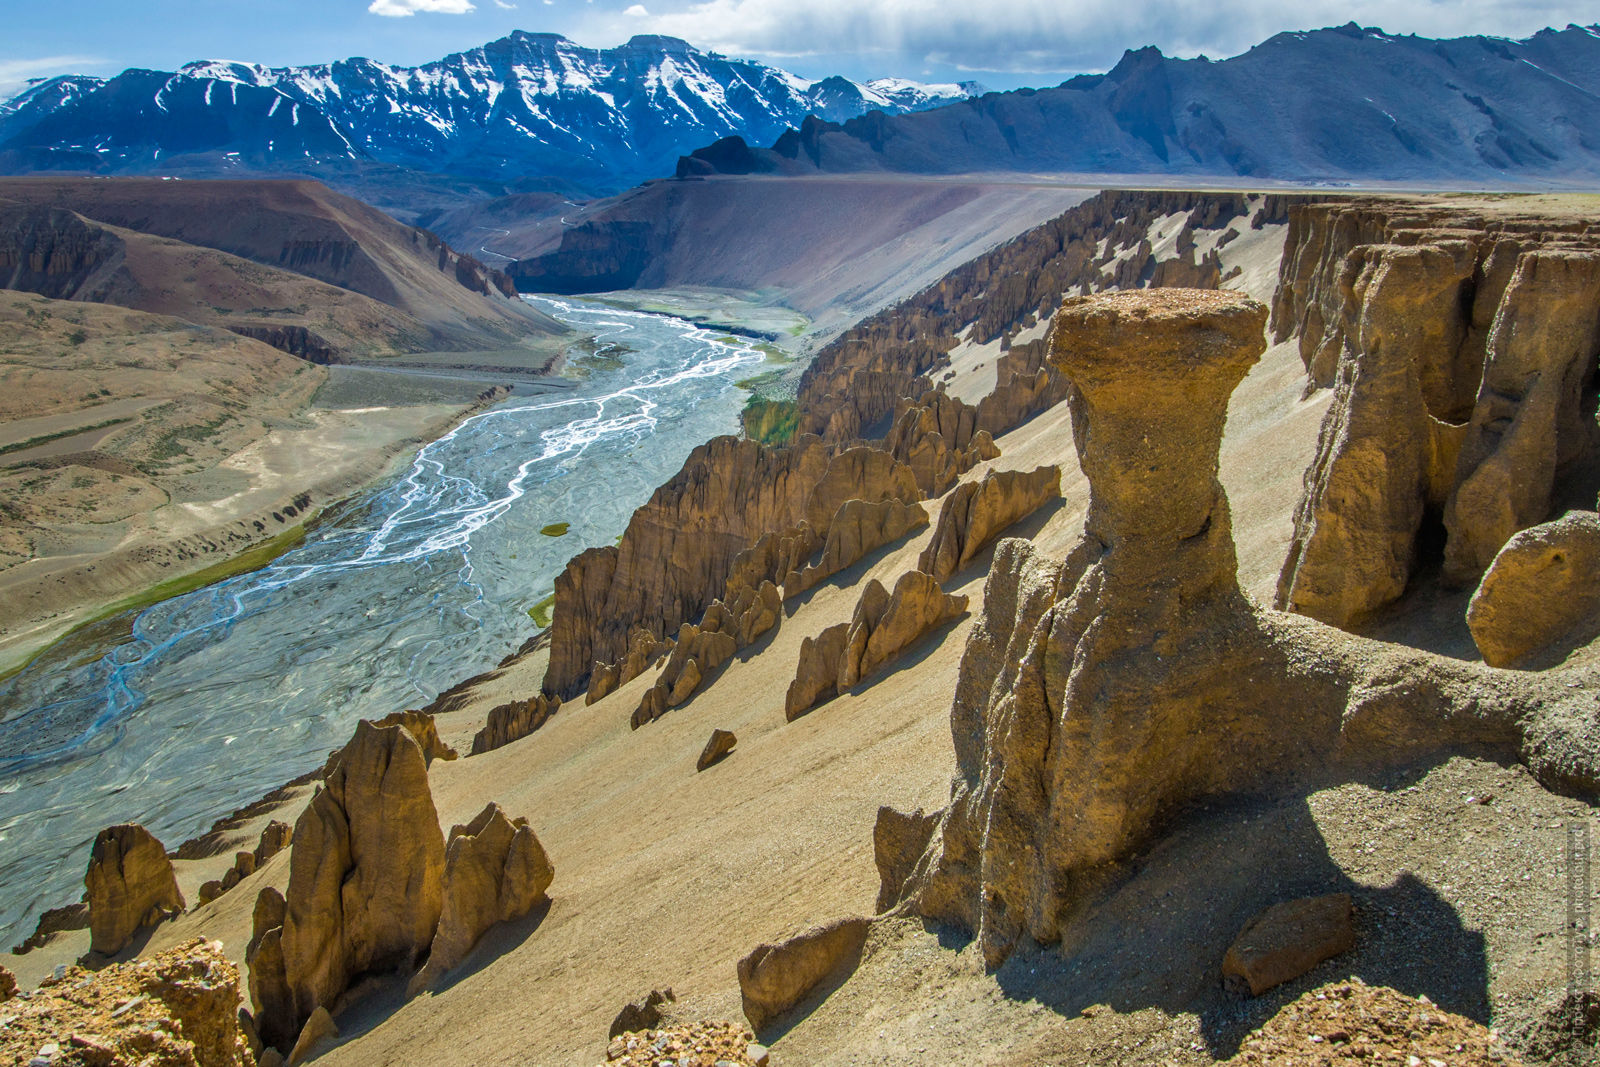 Grand Canyon Expedition Tibet Lake-2: Pangong, Tso Moriri, Tso Kar, Tso Startsapak, Leh-Manali highway.